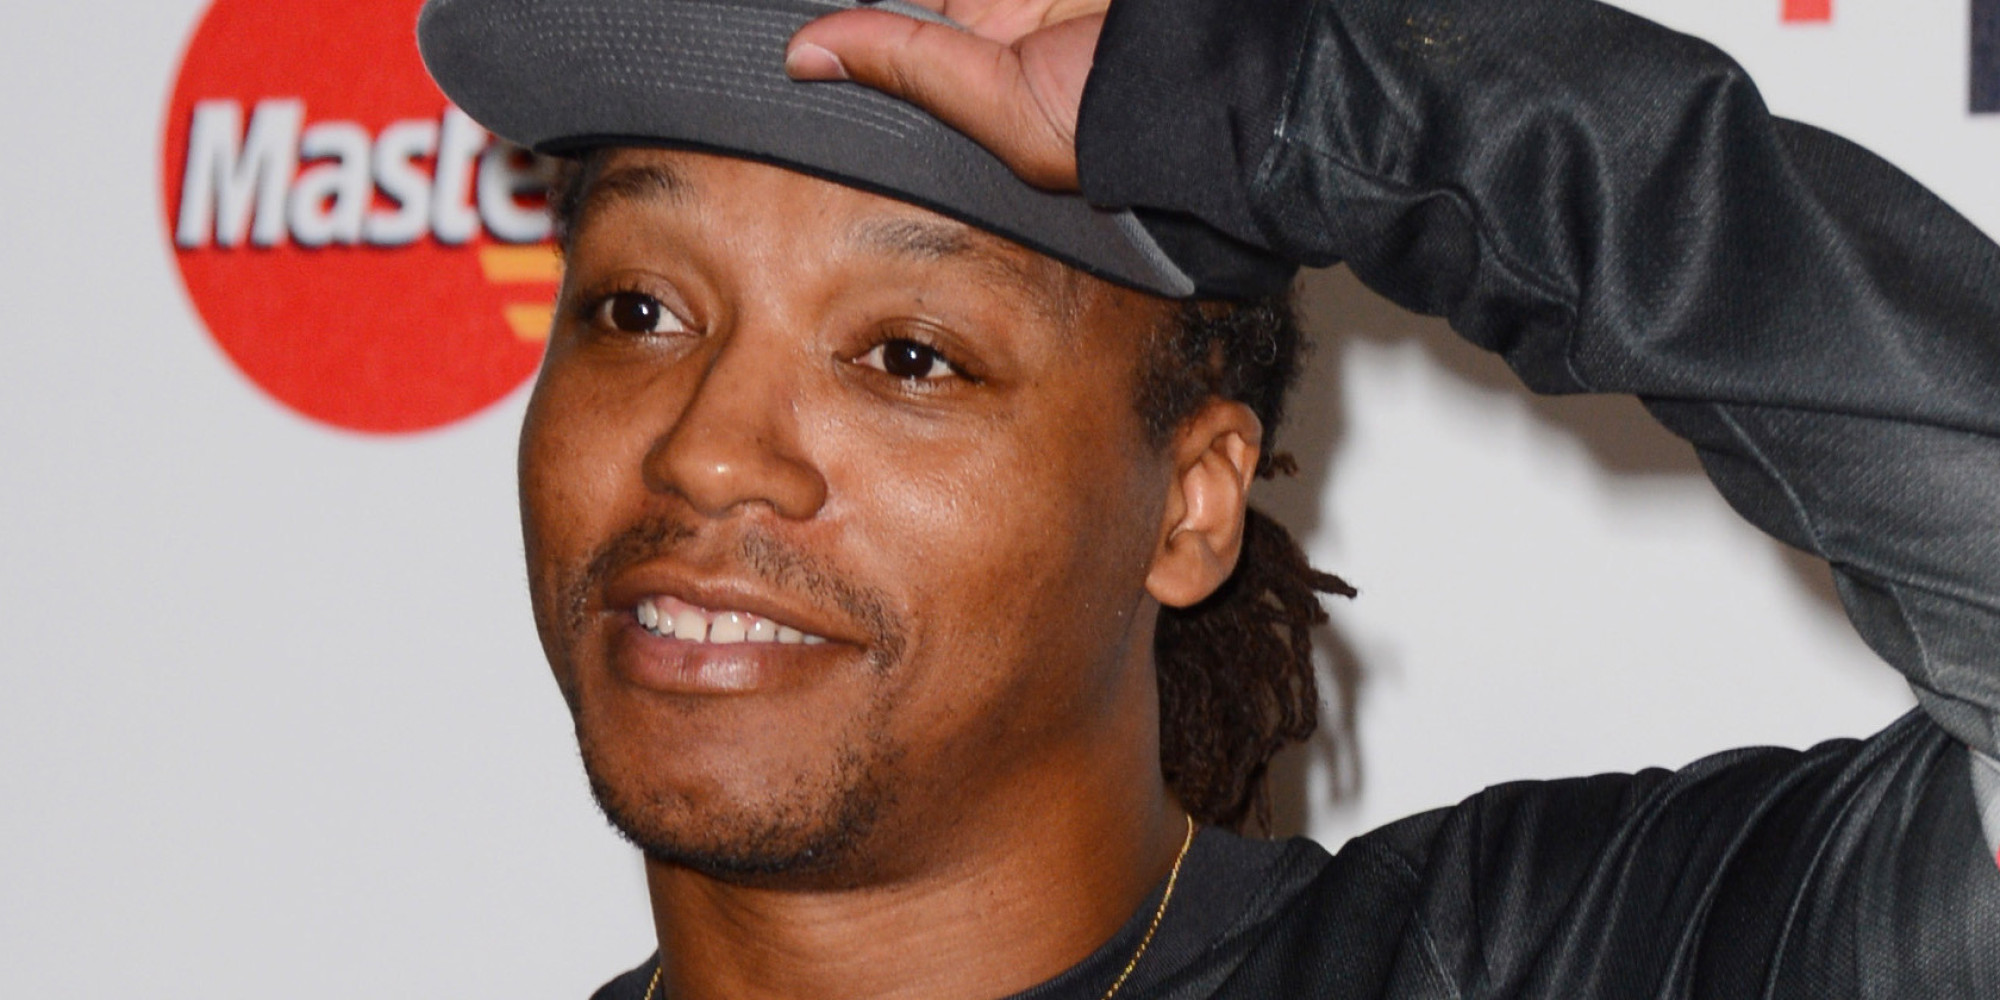 Lupe Fiasco Explains Why The Concept Of White Supremacy Is ...